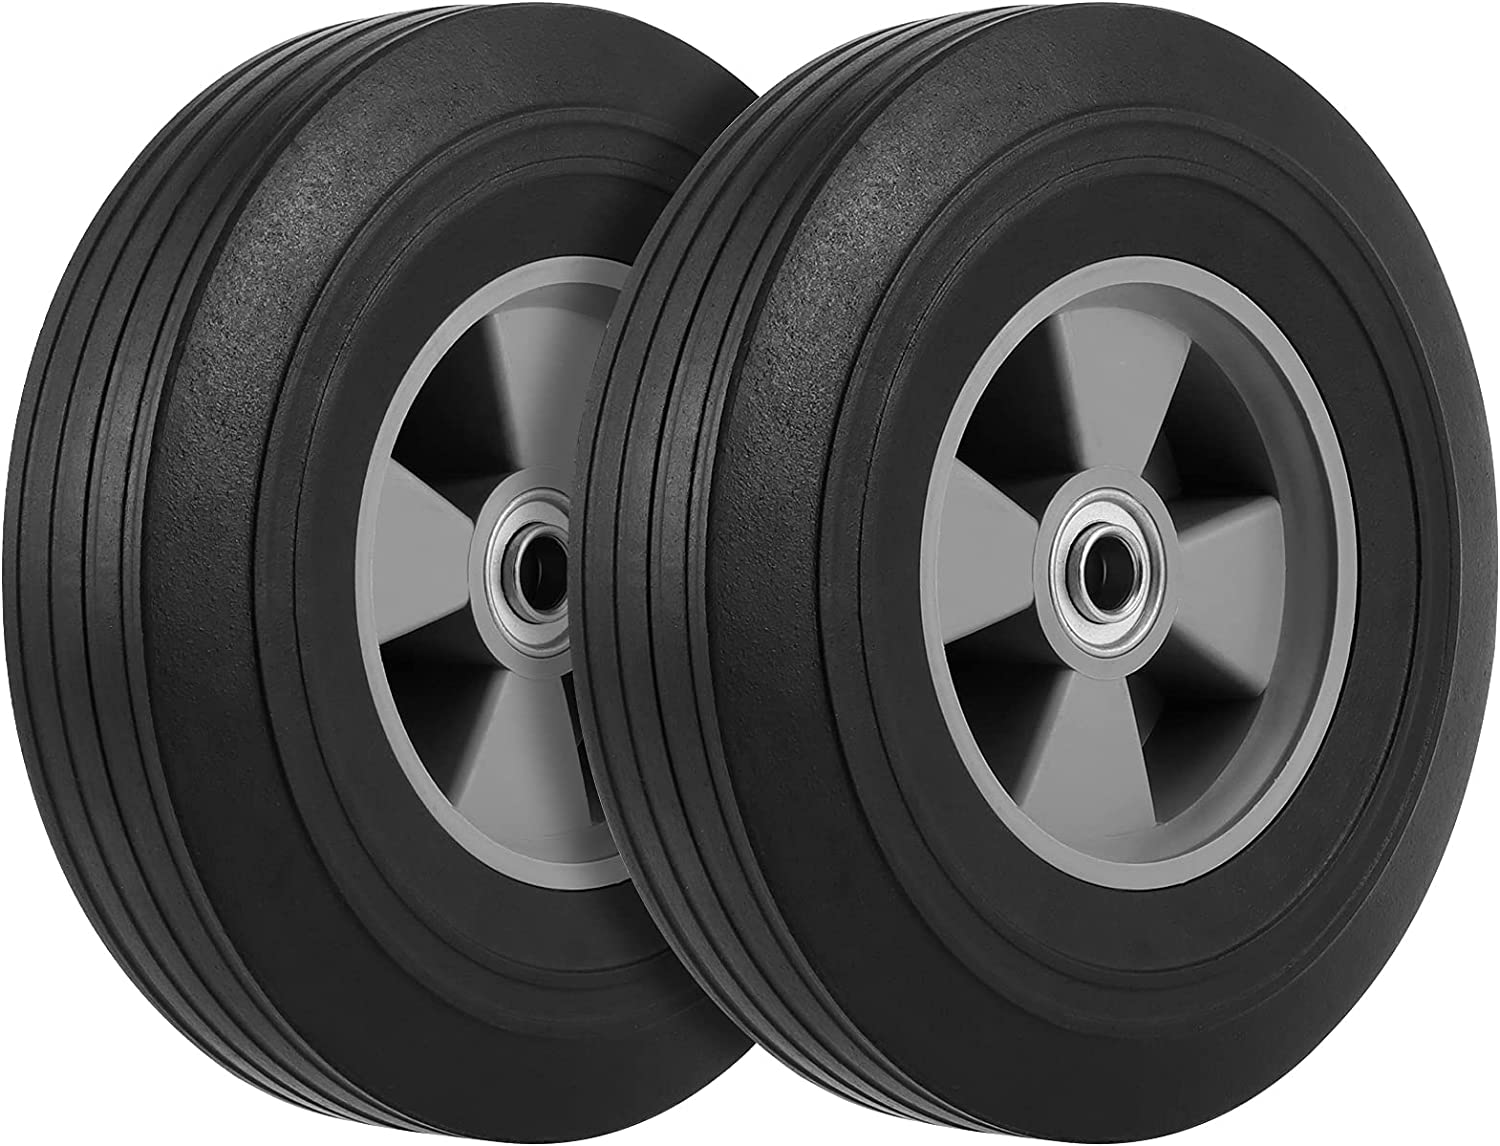 WONGWAI 2 Pack 10 Inch Solid Rubber Wheelbarrow Tire, 5/8 Inch Axle Size Hand Truck Wheels Replacement Tires for Hose Cart, Garden Cart, Dolly Cart, 330 lb Load Capacity